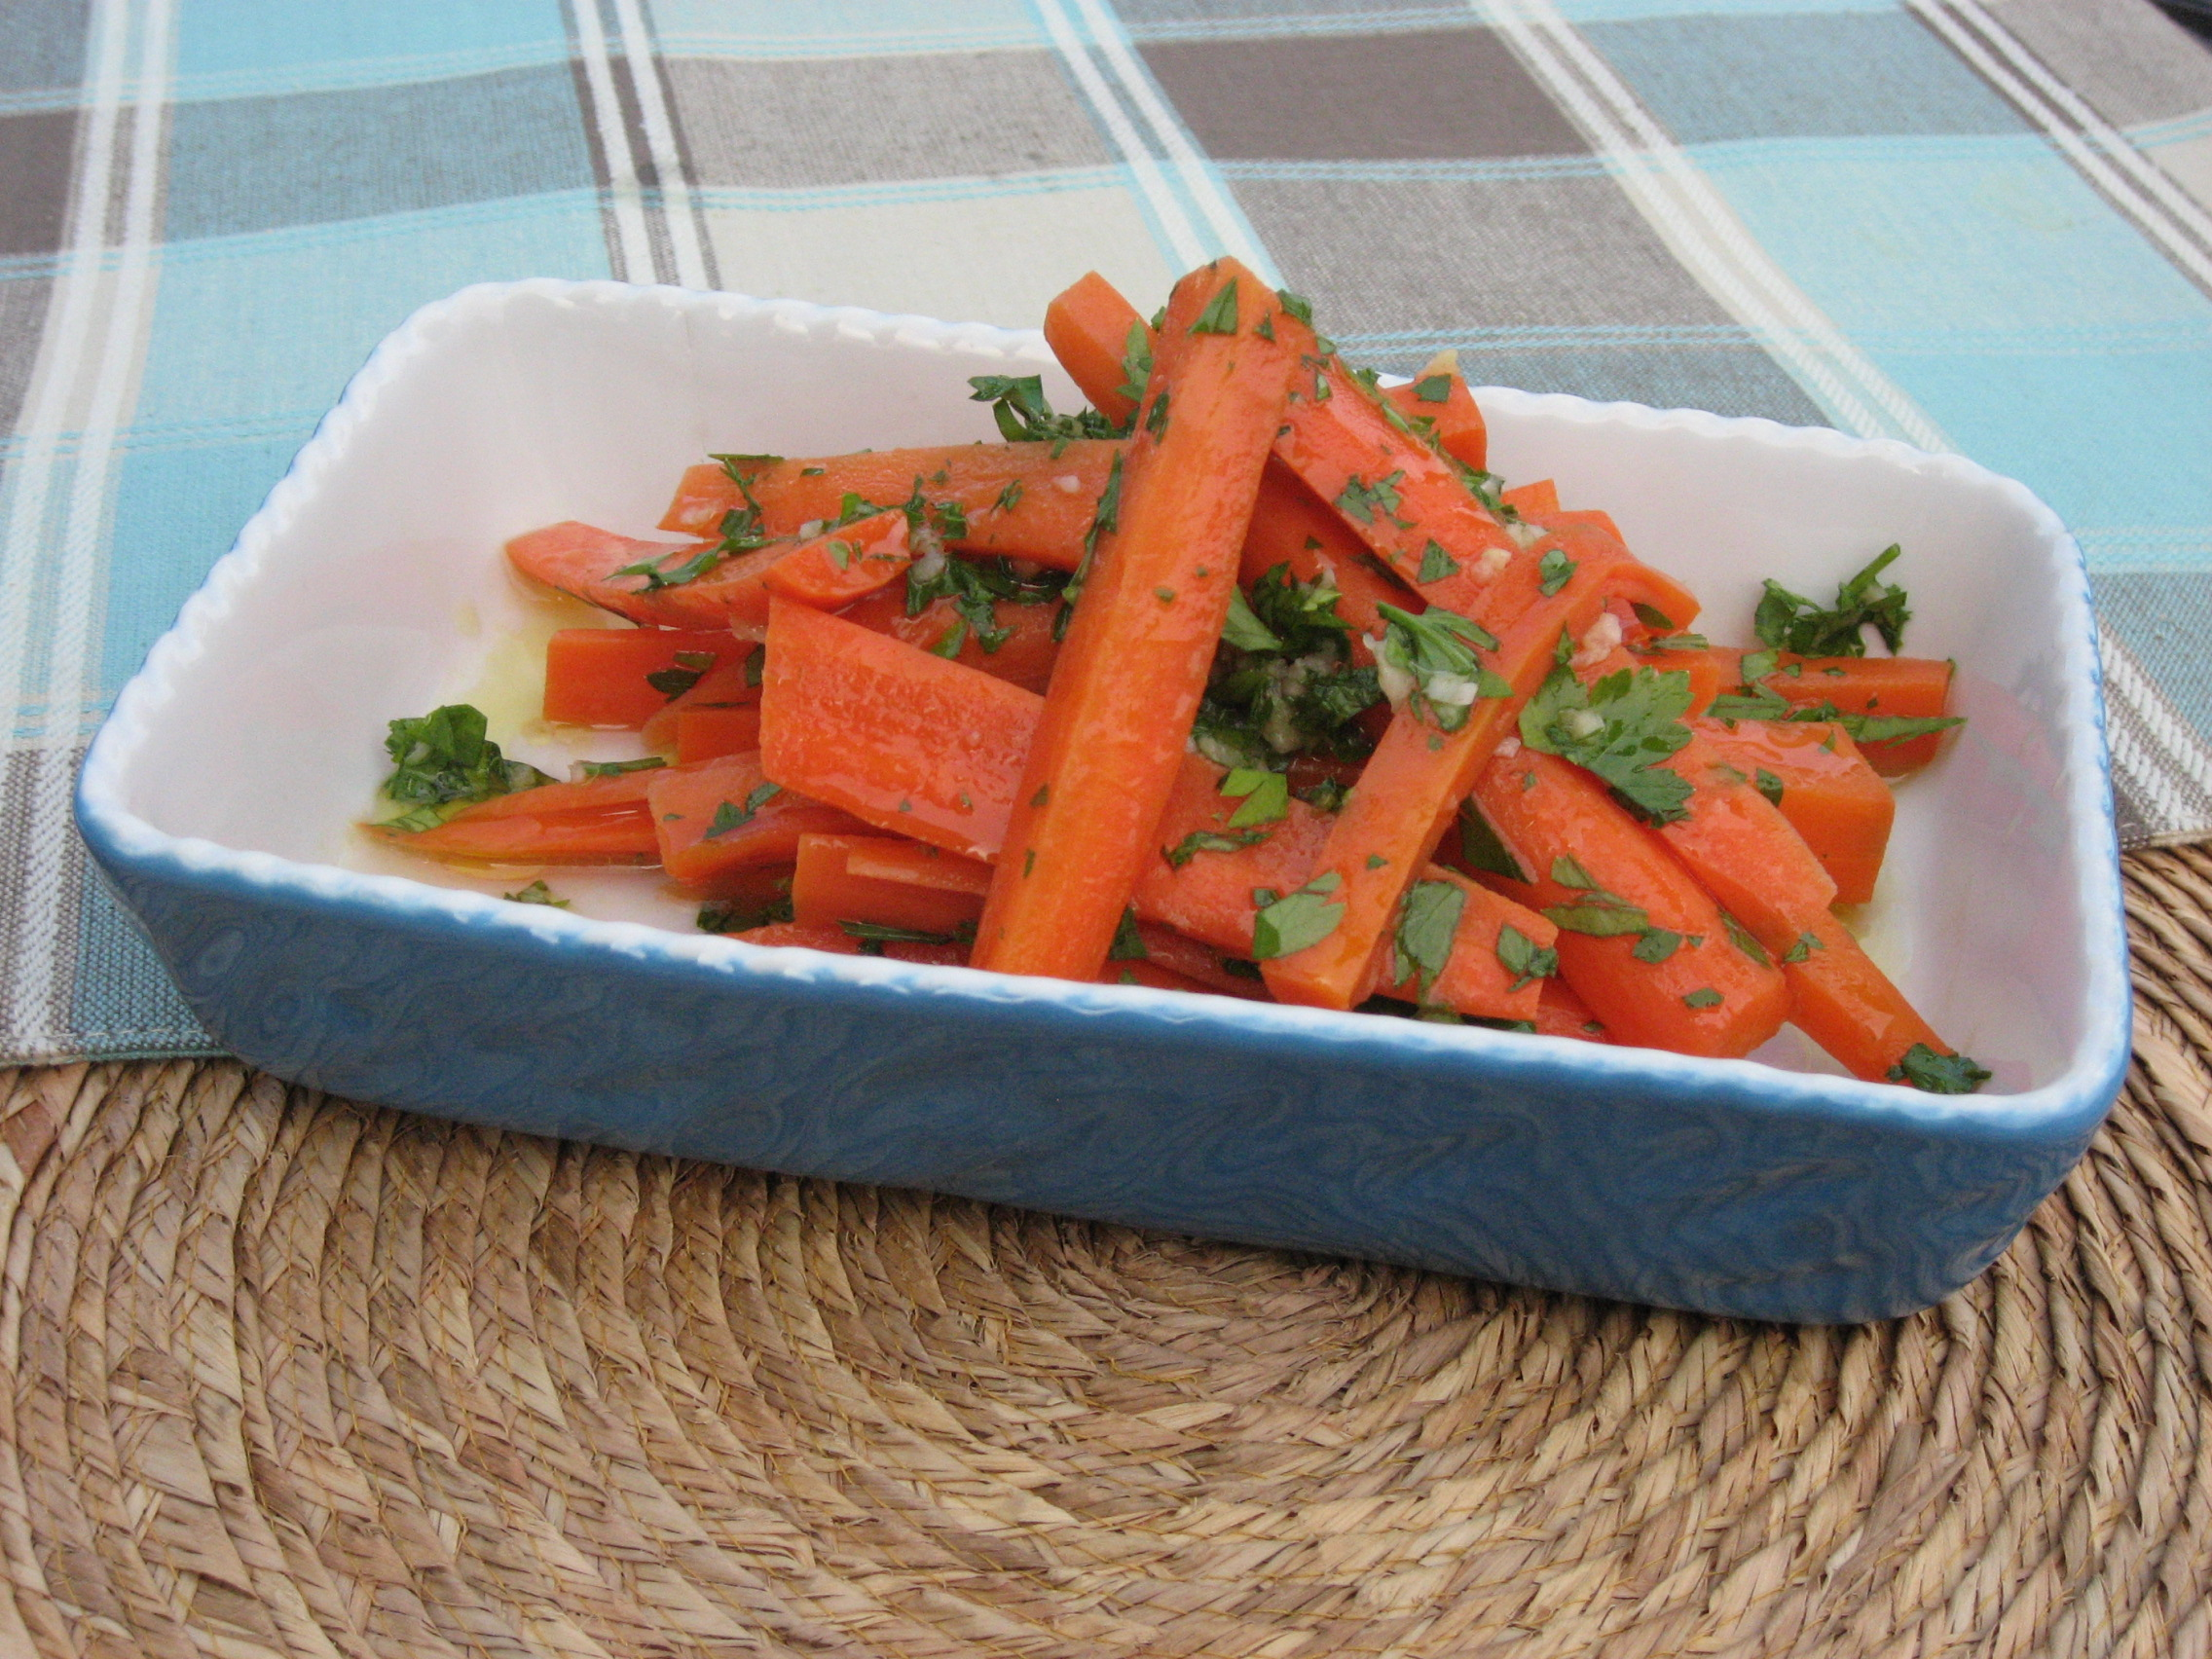 Italian Garlic &amp; Carrot Salad 